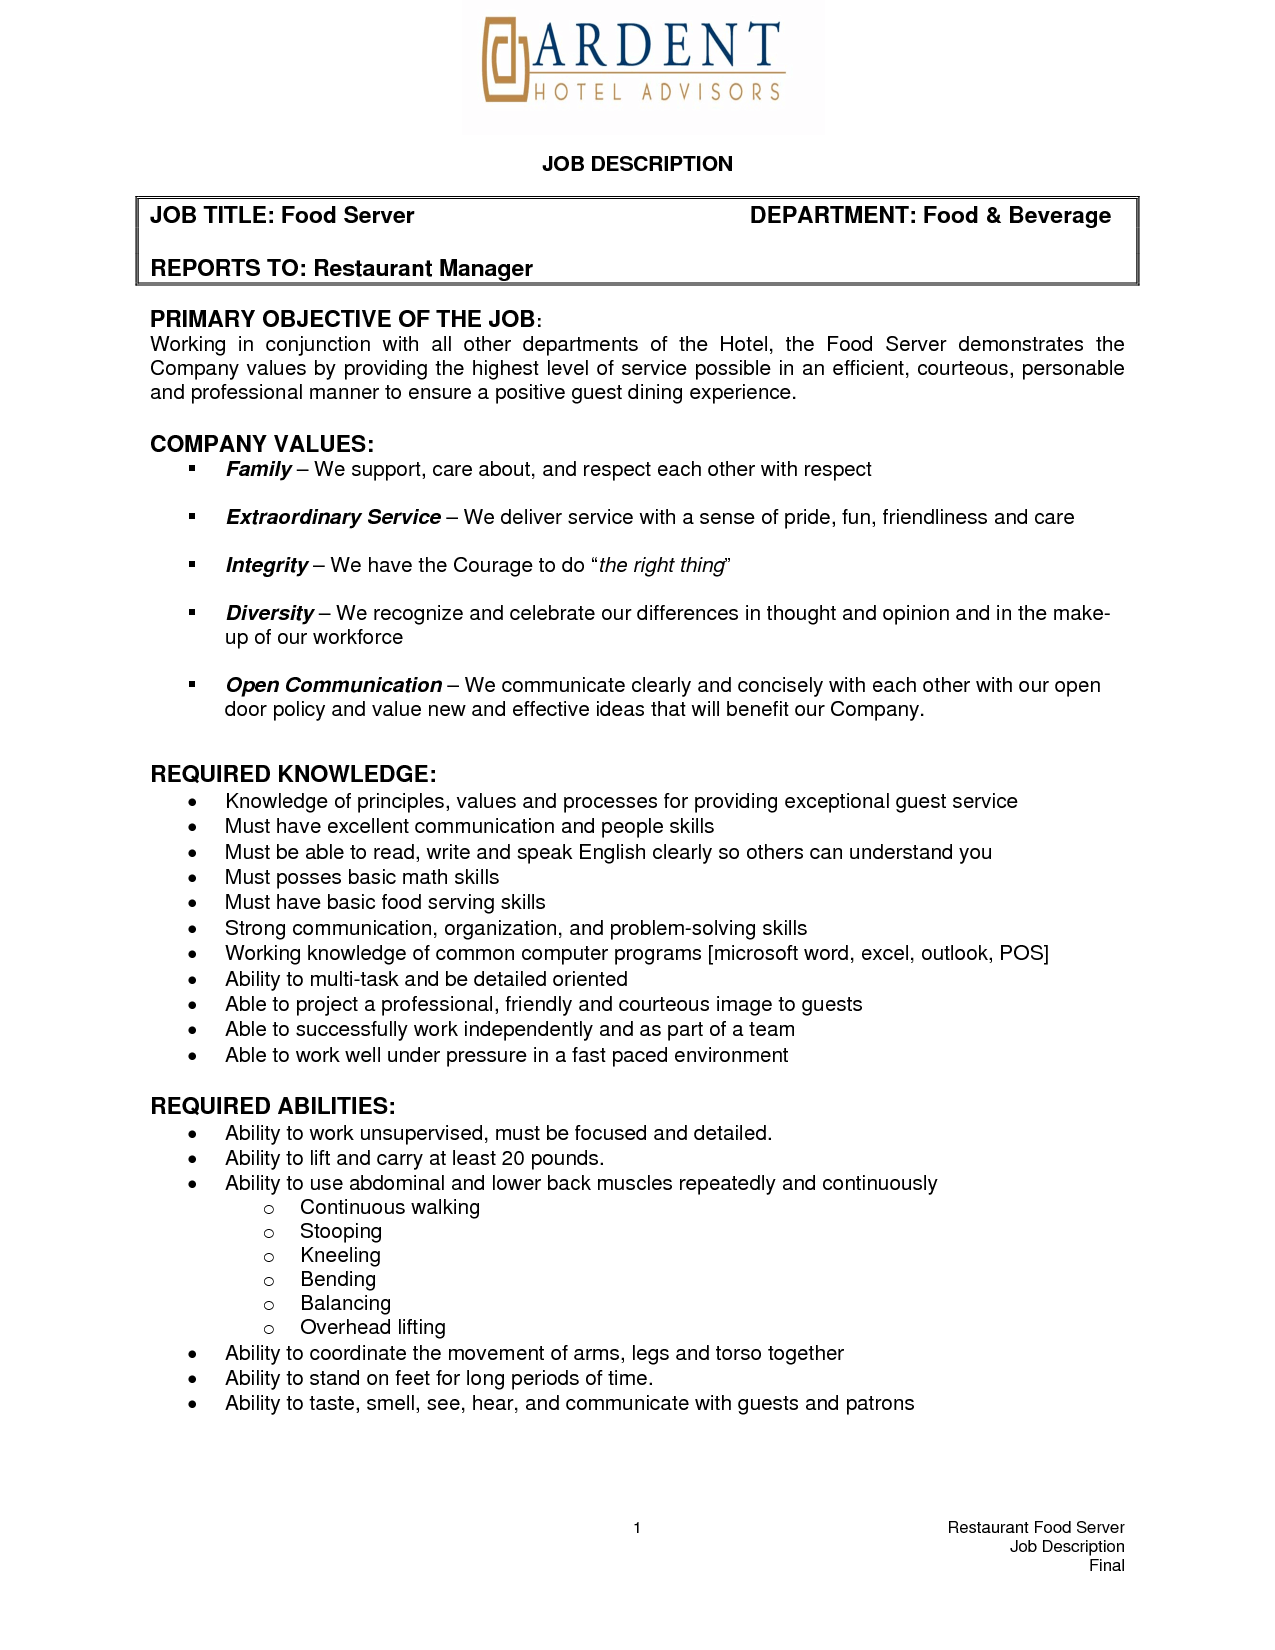 technician duties resume cv cover letter - Job Description For Merchandiser